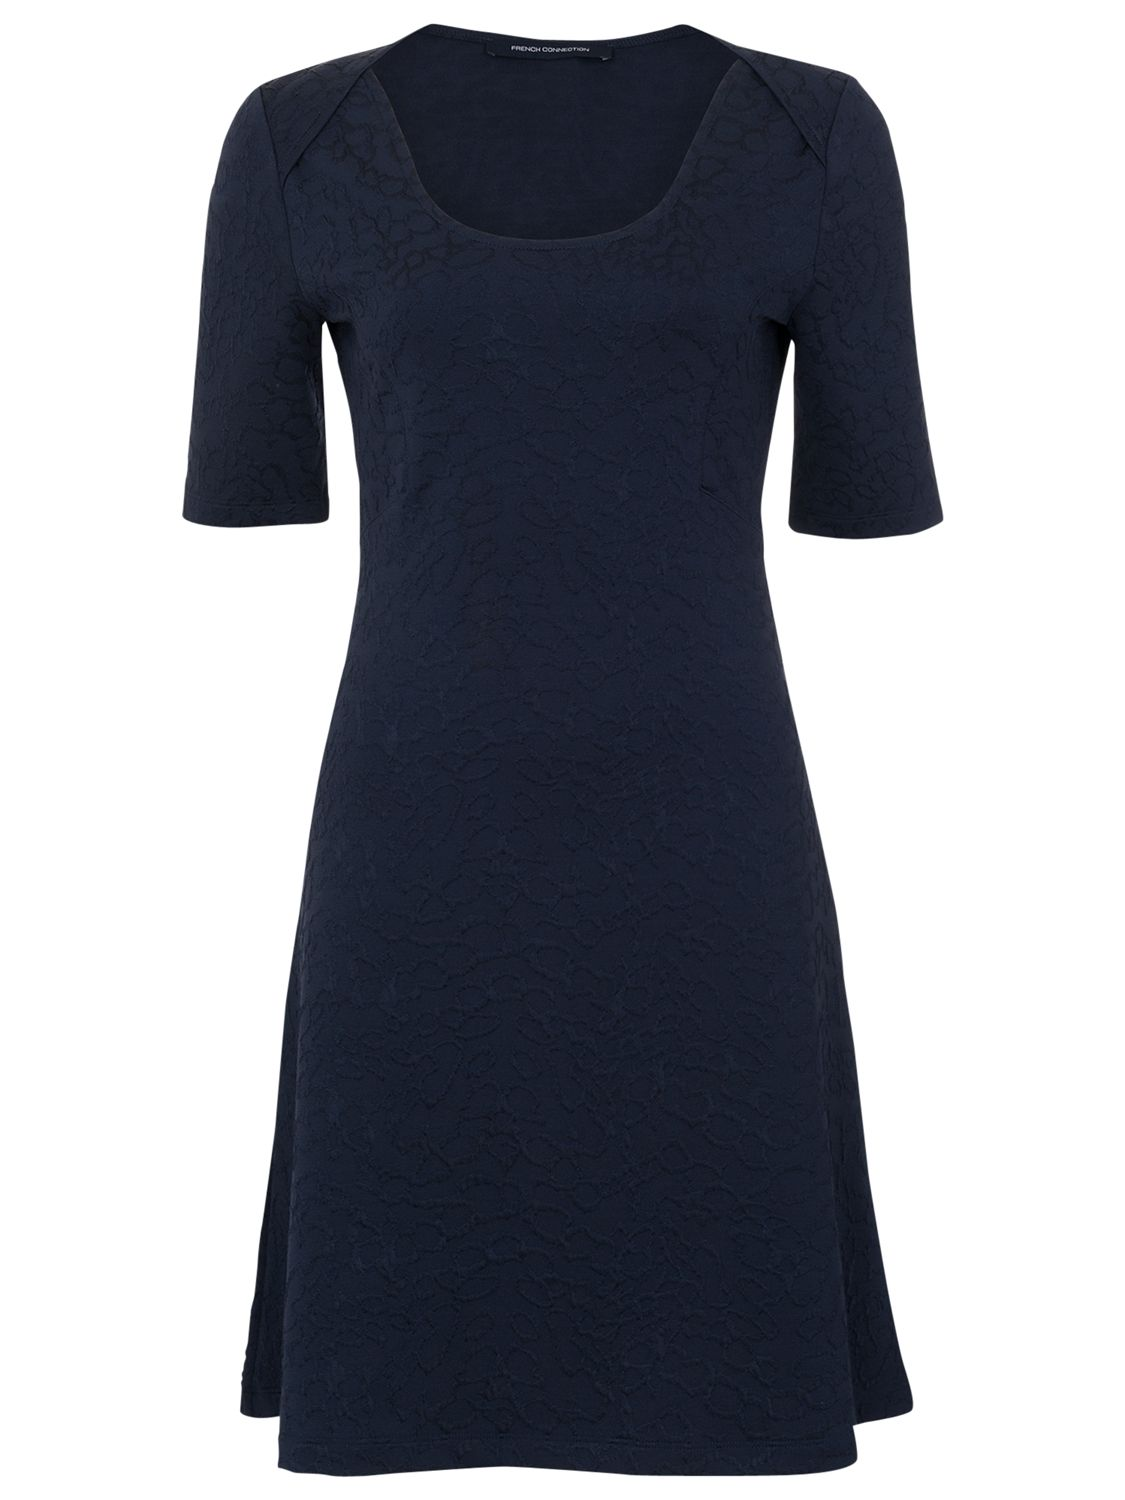 french connection leopard moth jacquard dress nocturnal blue, french, connection, leopard, moth, jacquard, dress, nocturnal, blue, french connection, 12|10|16|8|14|6, women, womens dresses, special offers, womenswear offers, womens dresses offers, latest reductions, 1831291